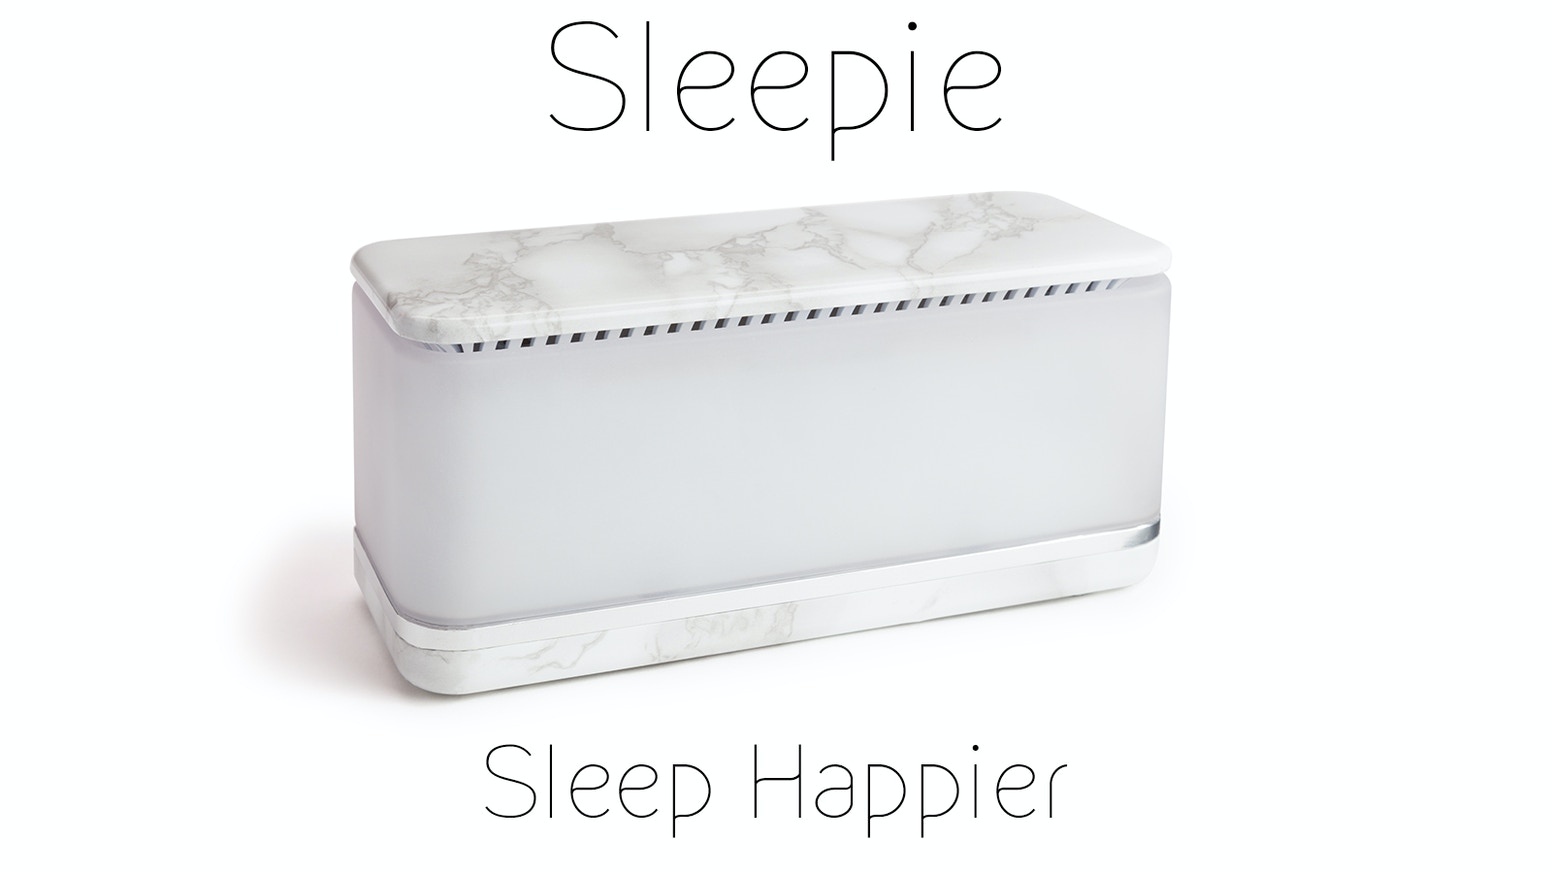 Sleepie uses lights, smells, sounds, and science to give you the best night's sleep you've ever had.